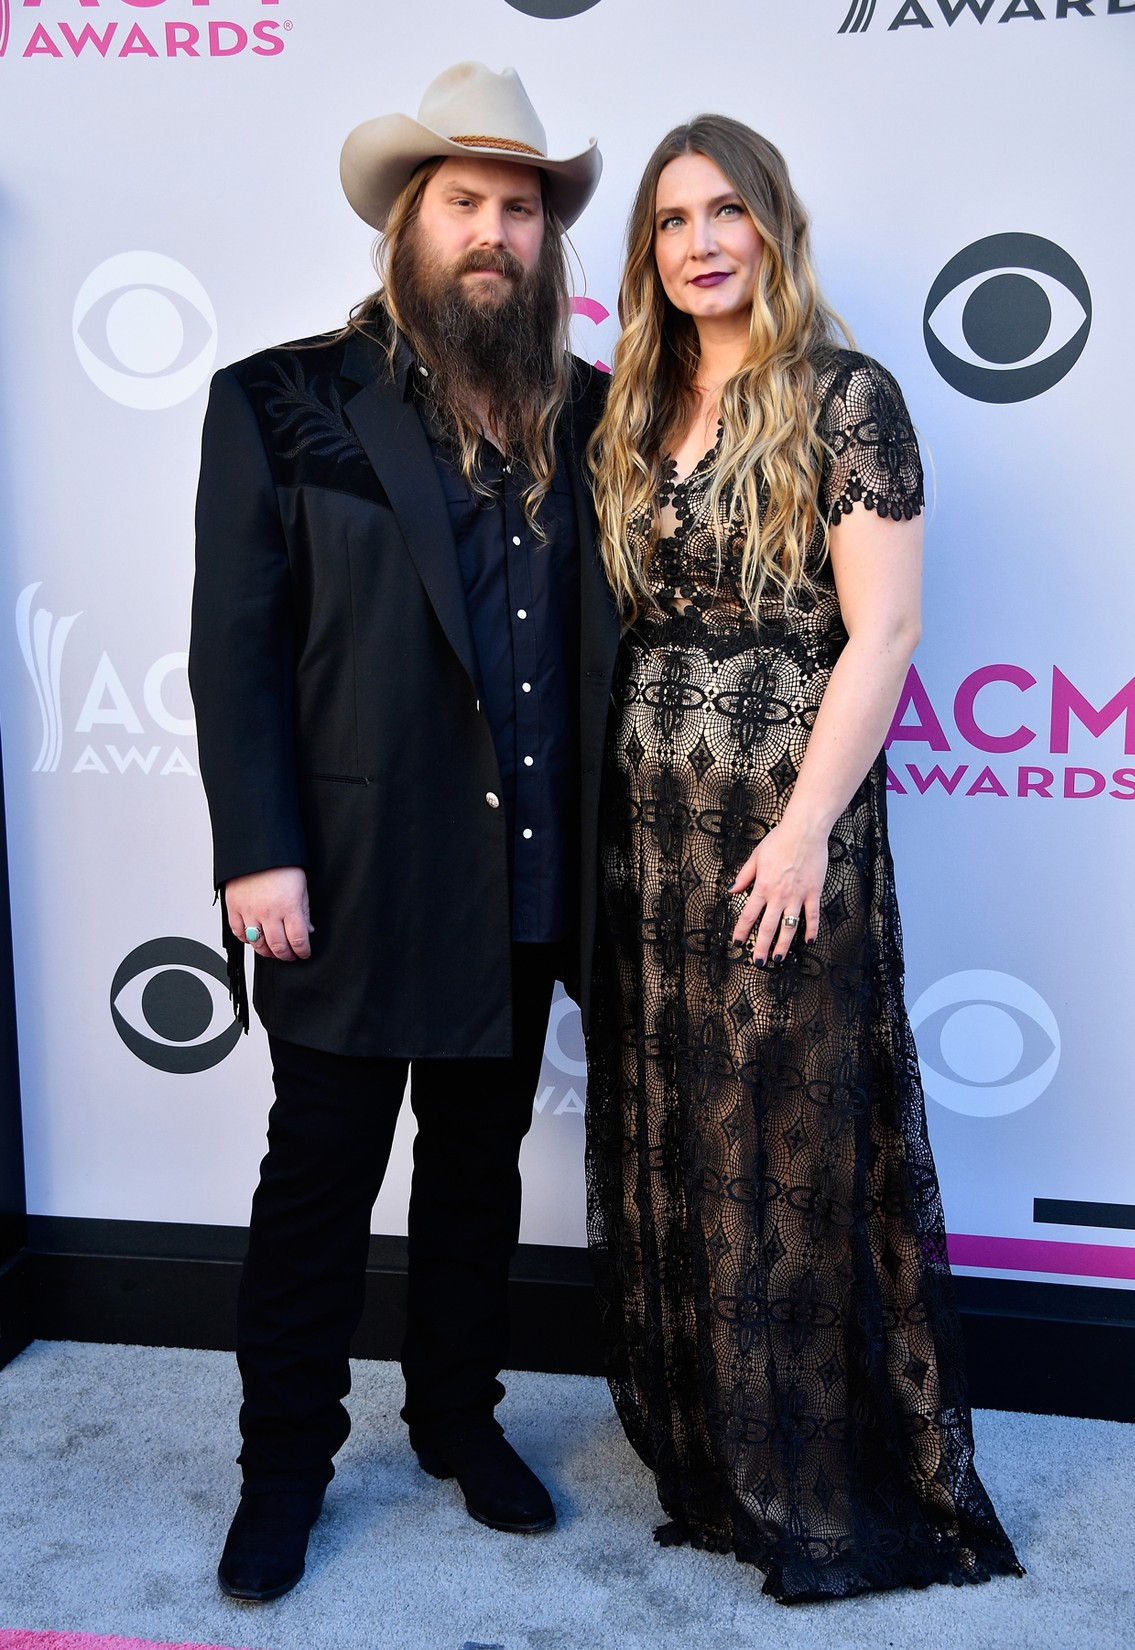 Chris Stapleton and Morgane Stapleton attend the 52nd Academy Of Country Music Awards at Toshiba Plaza on April 2, 2017 in Las Vegas.